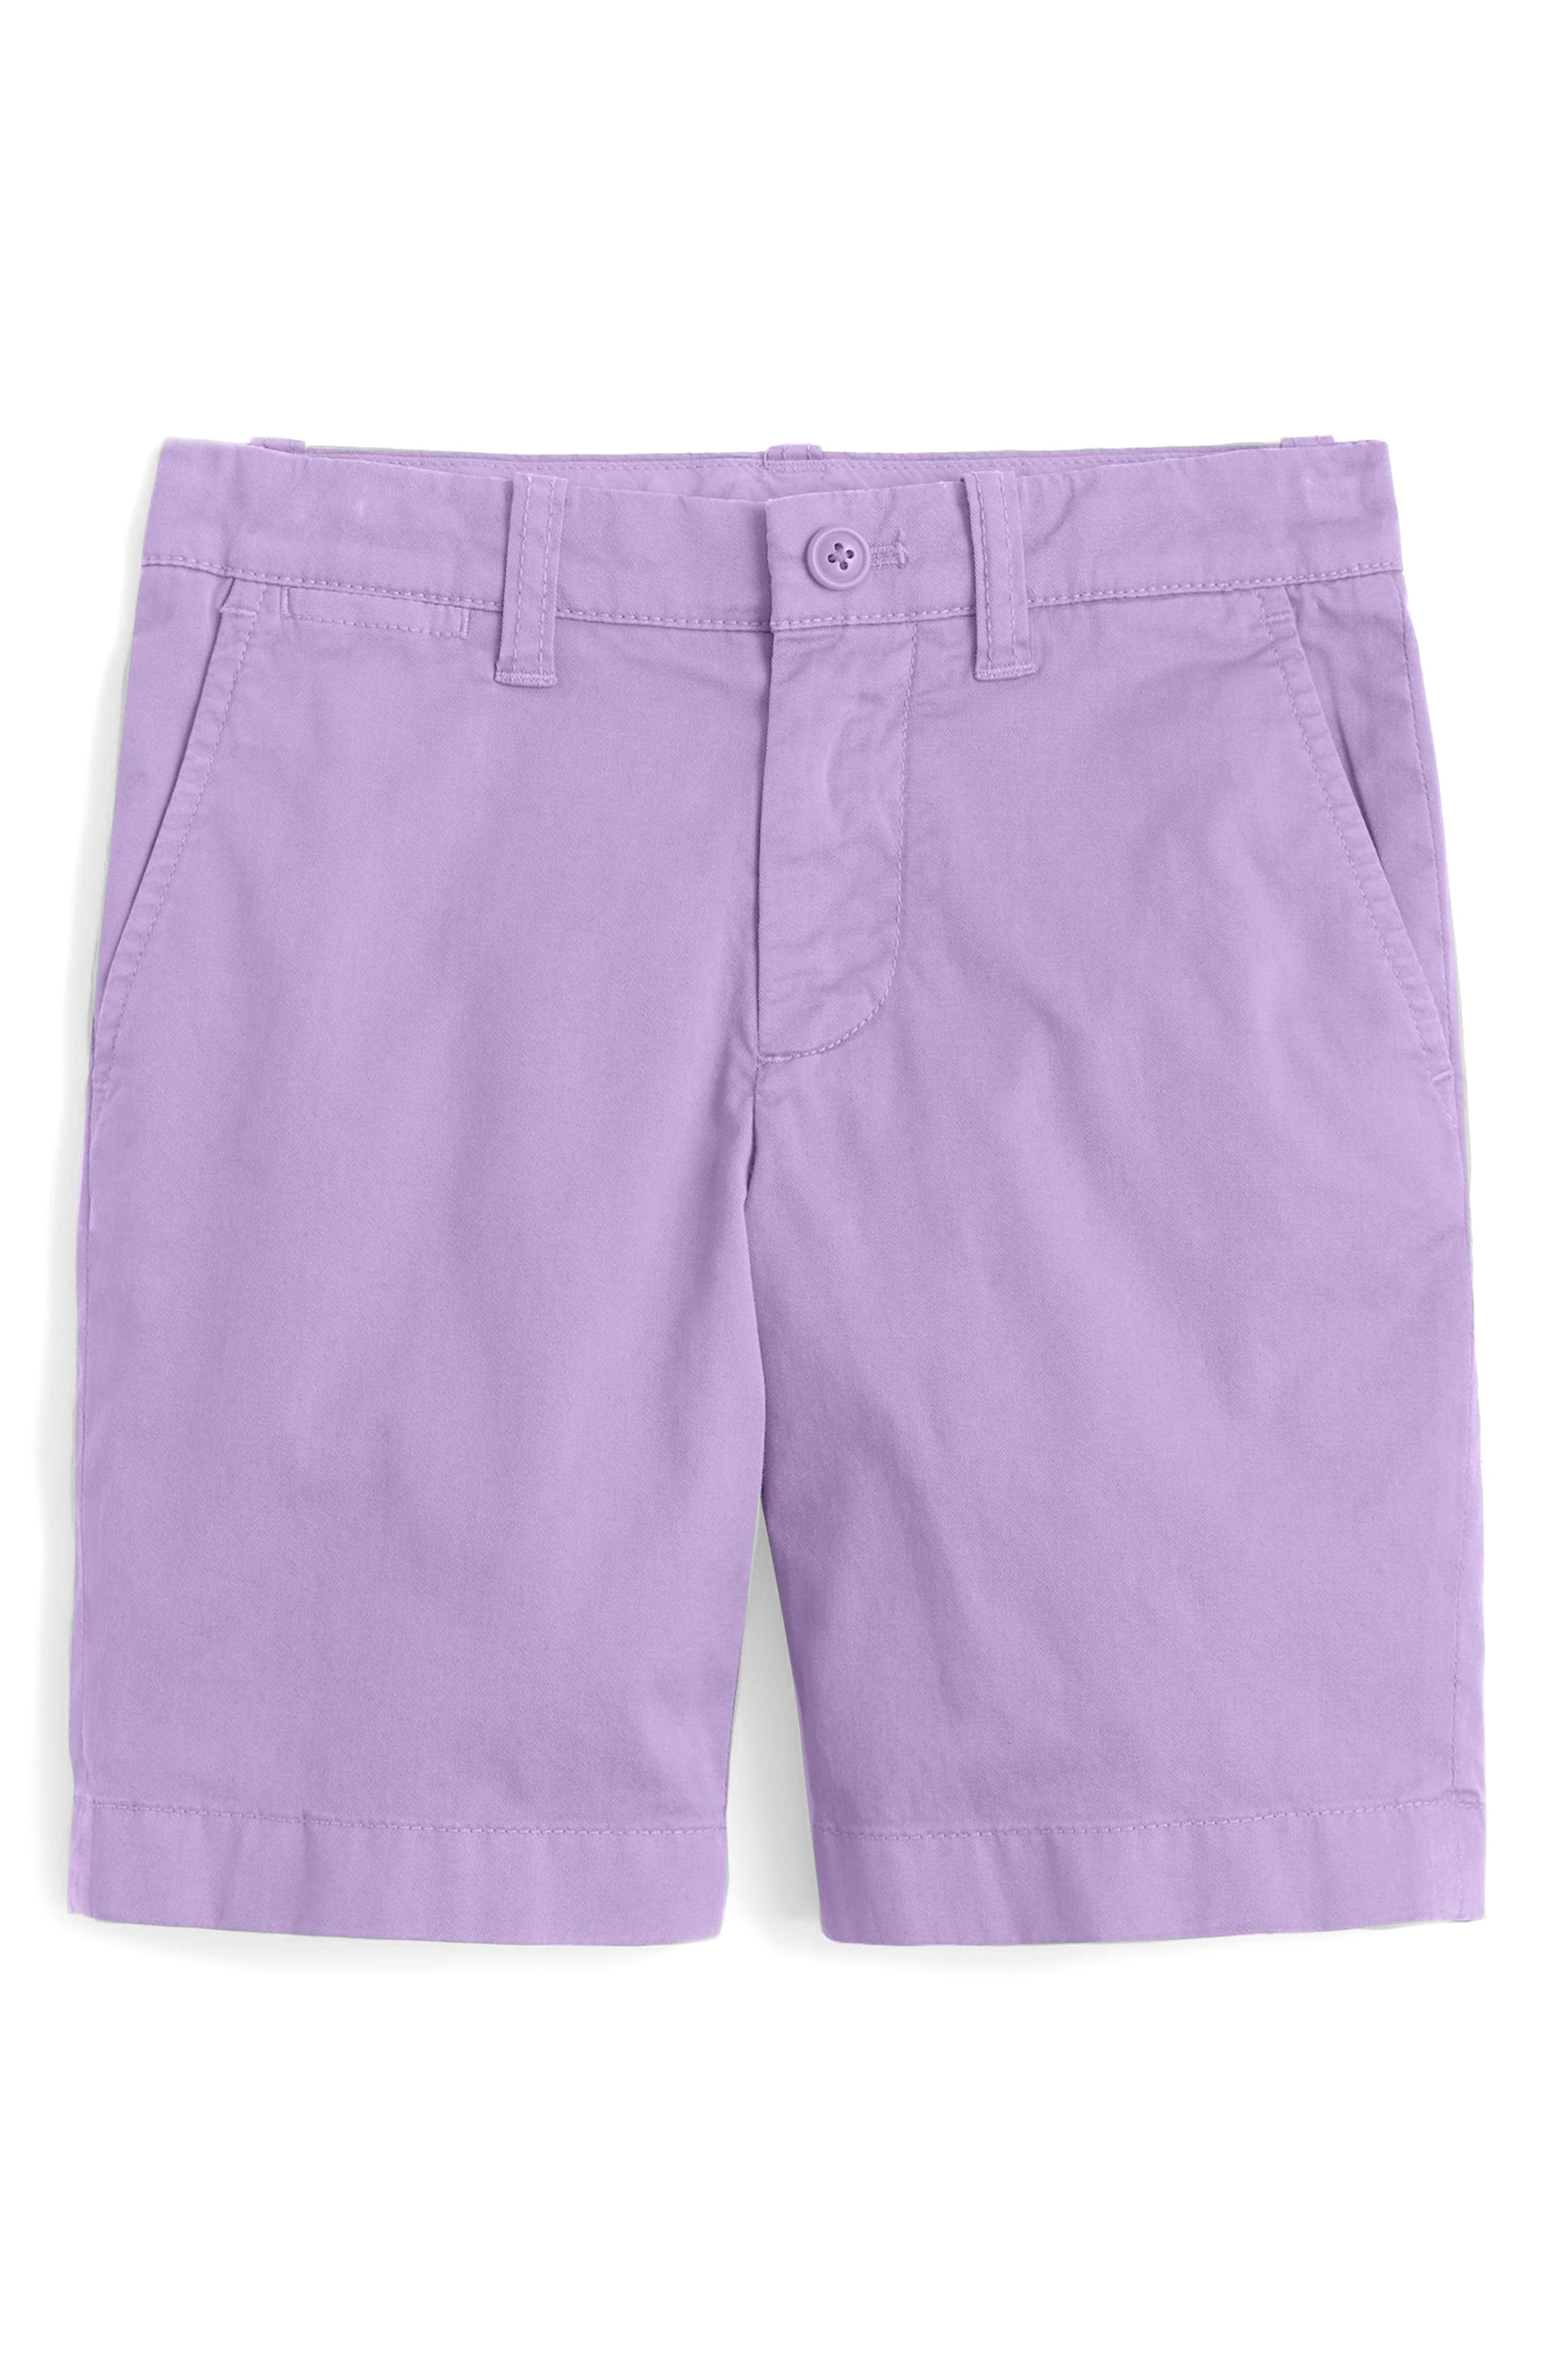 Stanton Chino Shorts,                         Main,                         color, Iced Lavender